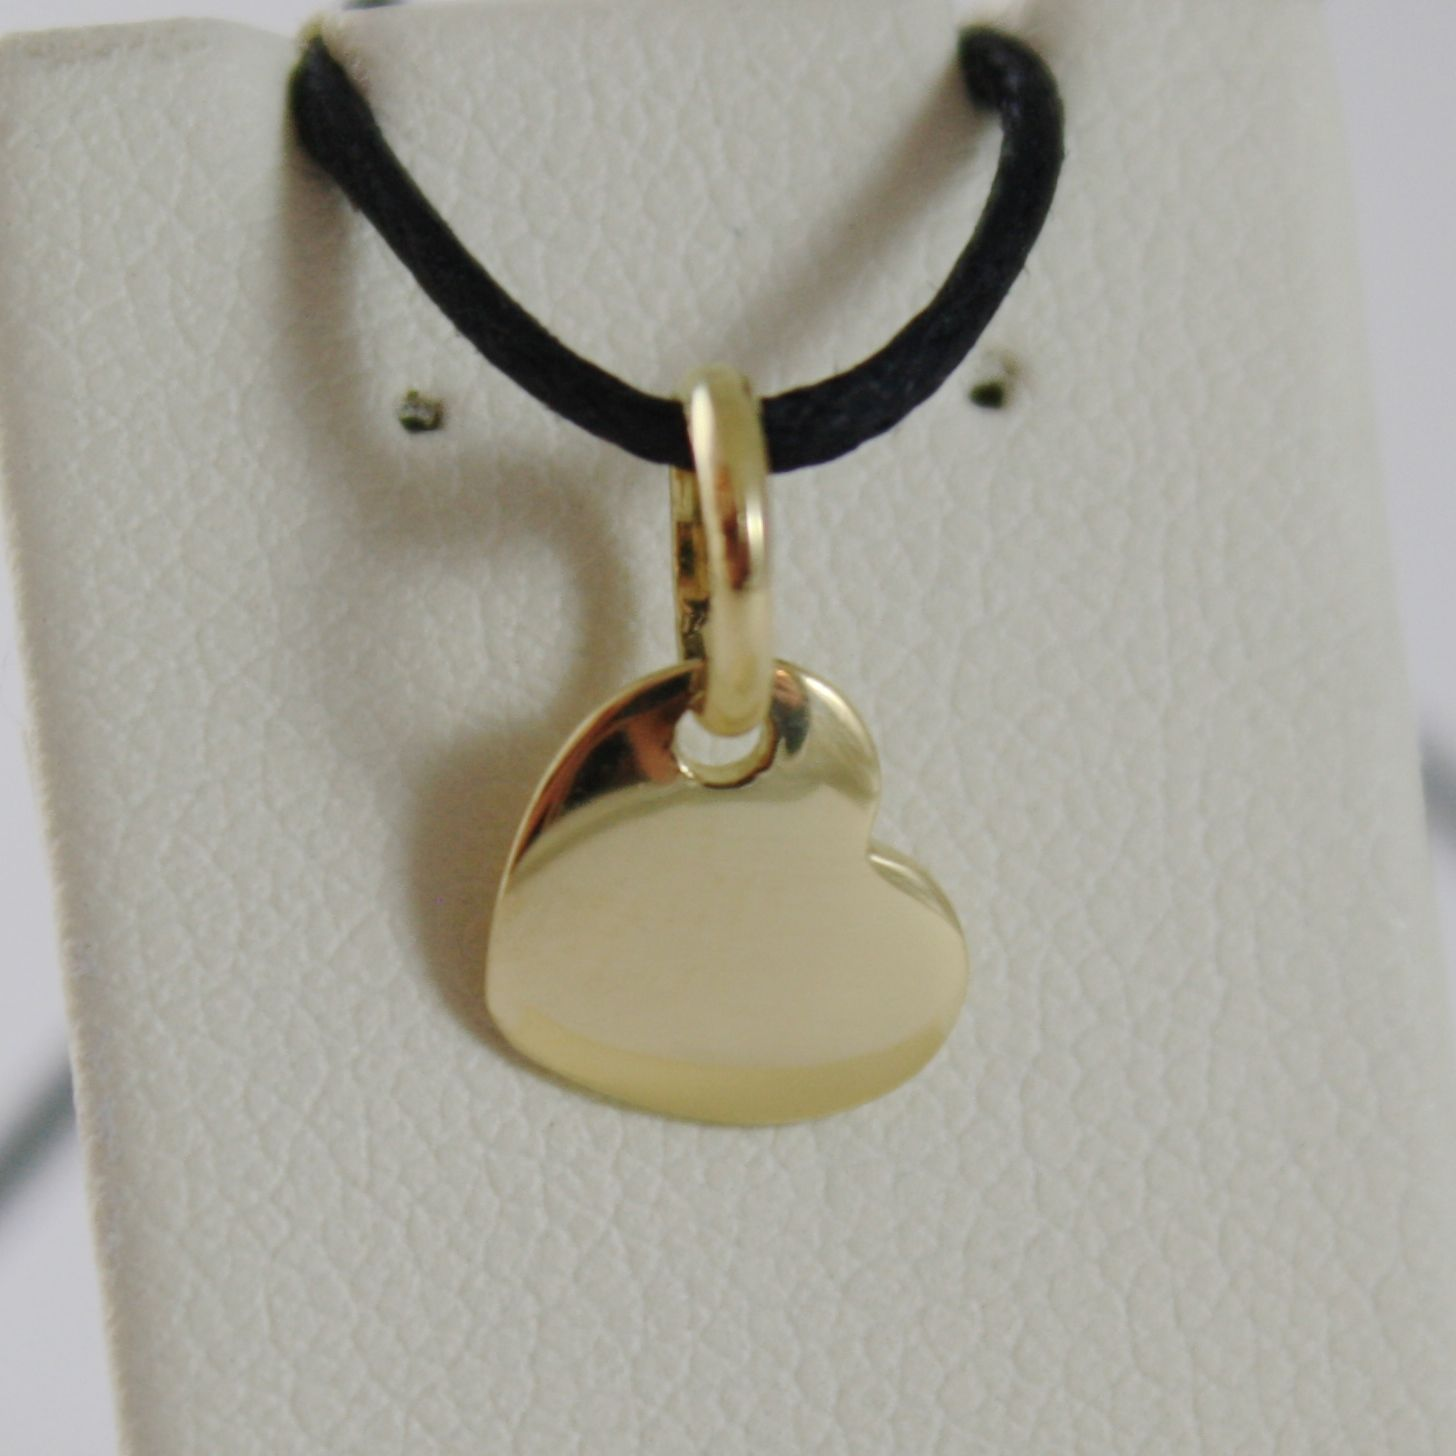 18K YELLOW GOLD MINI HEART CHARM PENDANT, 9 MM, FLAT SMOOTH SHINY MADE IN ITALY